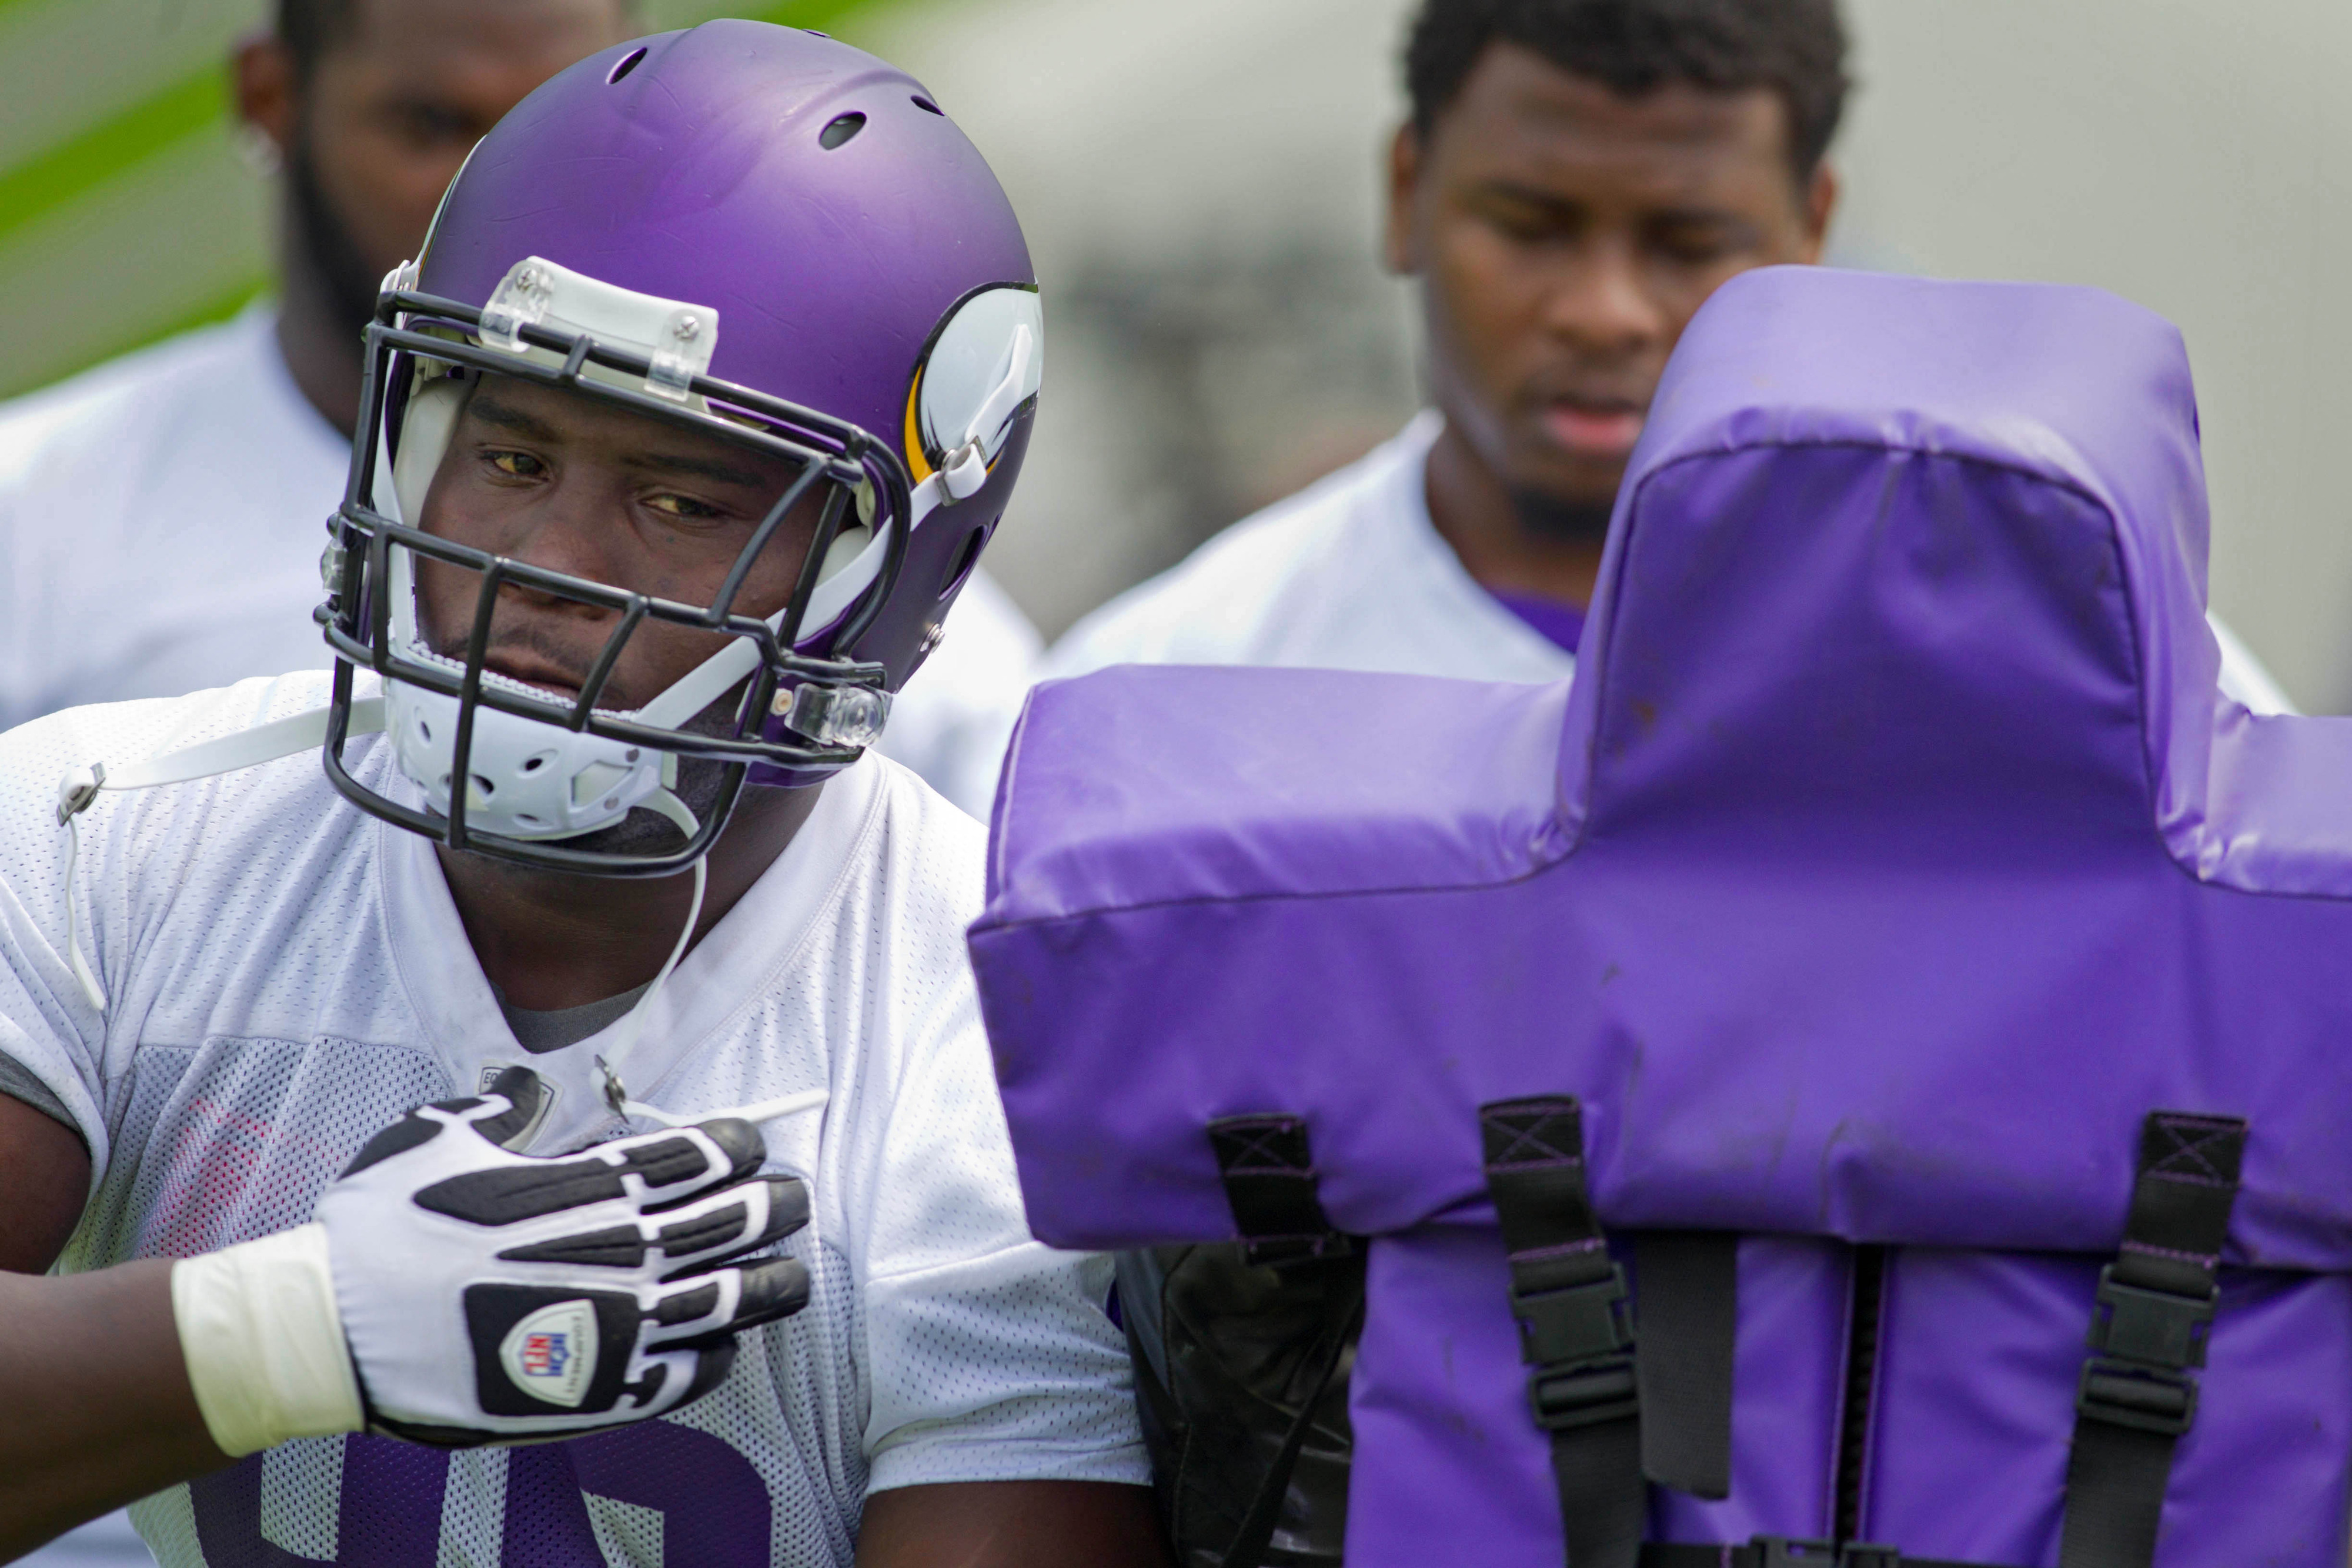 Swap that purple for green and you have an idea of what today looked like for Letroy Guion.